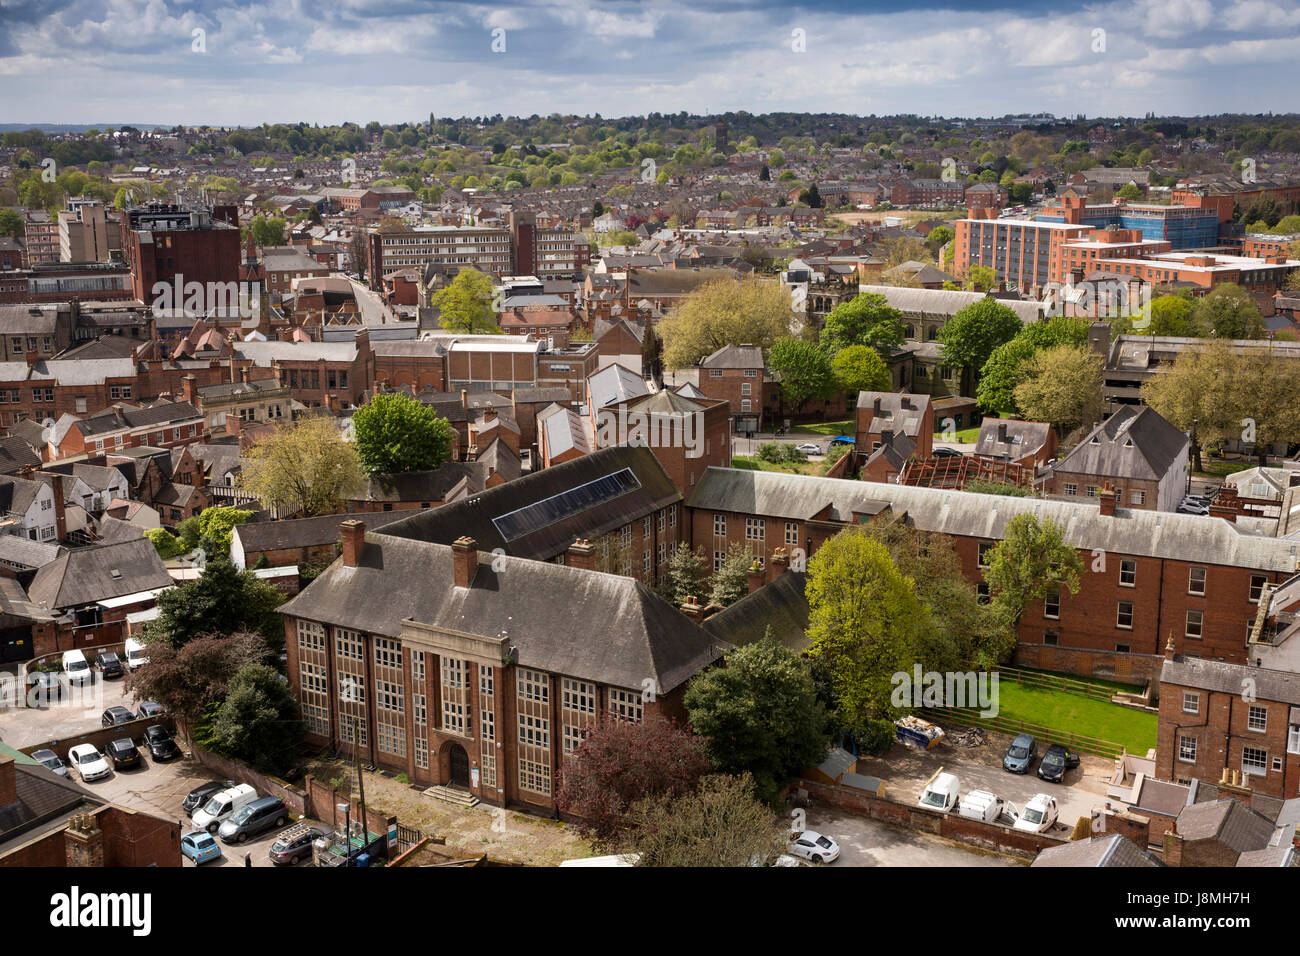 UK, England, Derbyshire, Derby, George Lane, Council Offices, elevated view from Cathedral Tower - Stock Image